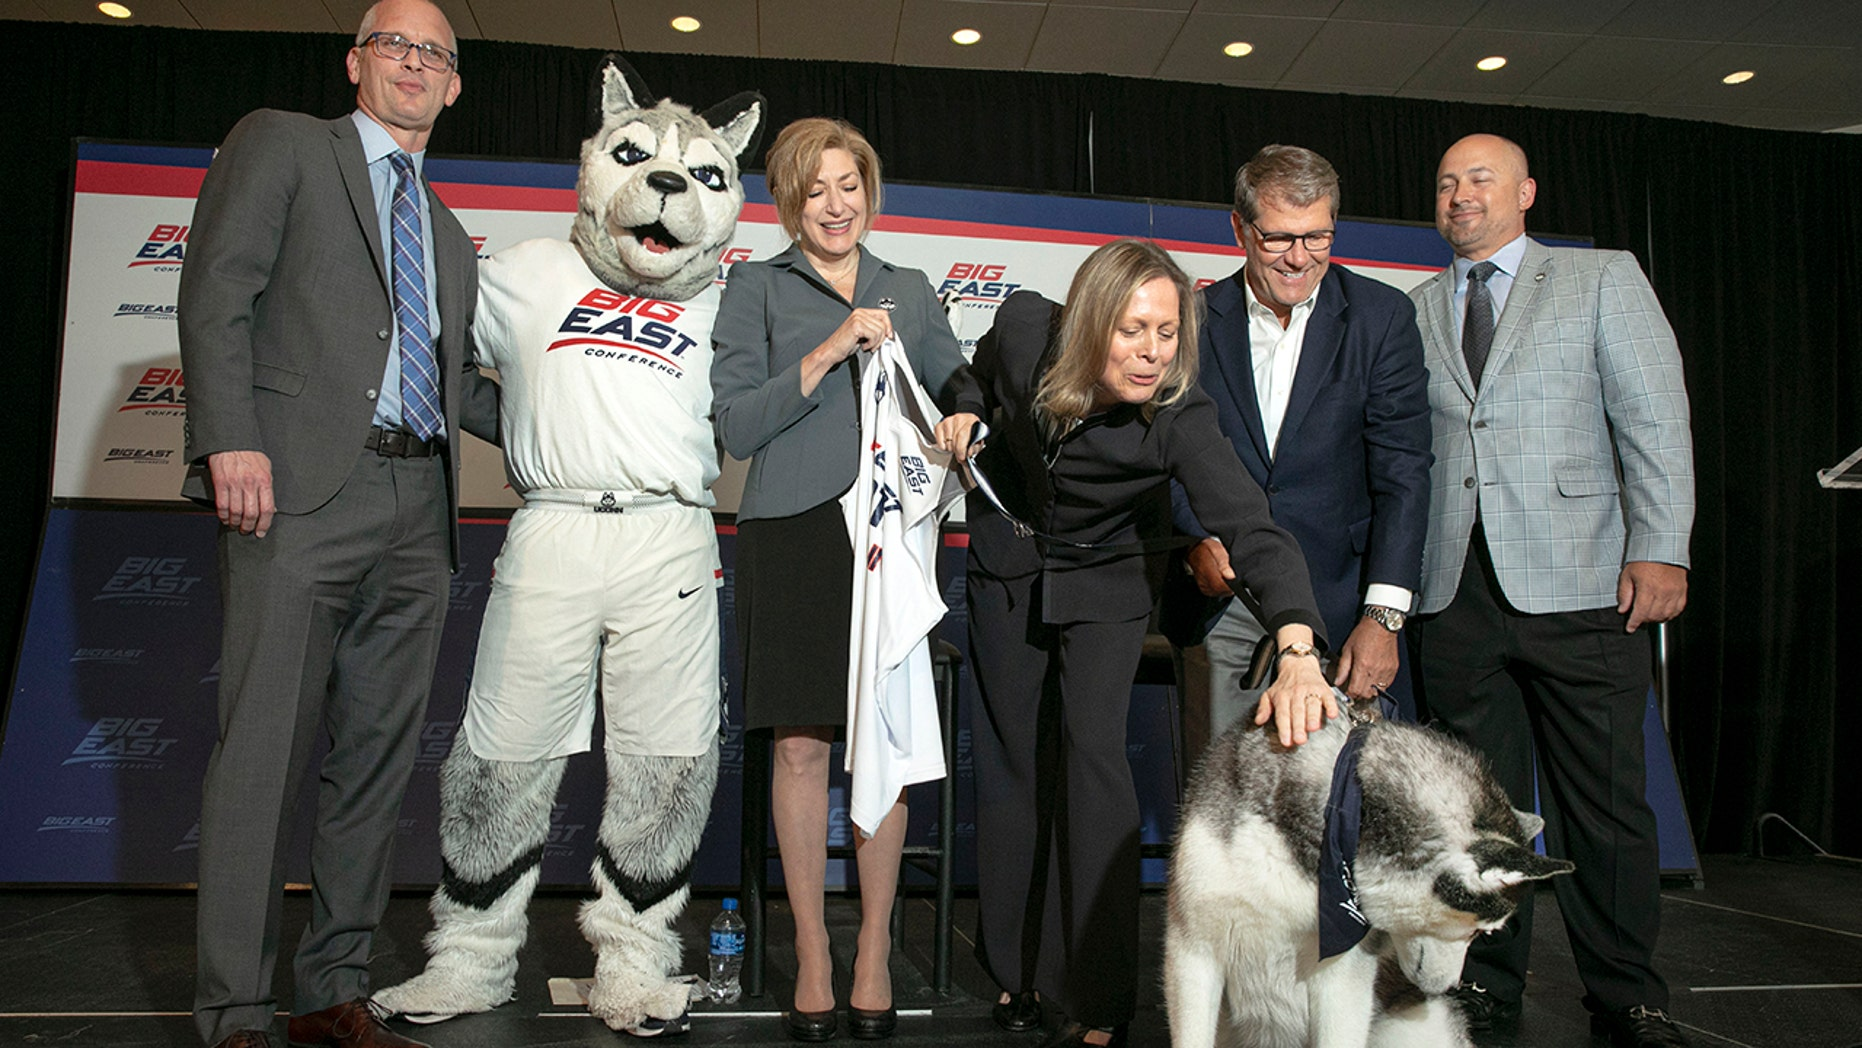 University of Connecticut men's basketball coach Dan Hurley, left, University President Susan Herbst, third left, Big East Commissioner Val Ackerman, fourth left, women's basketball coach Geno Auriemma, fifth left, and Director of Athletics David Benedict, pose for photos during the announcement that the University of Connecticut is re-joining the Big East Conference, at New York's Madison Square Garden, Thursday, June 27, 2019. (AP Photo/Richard Drew)